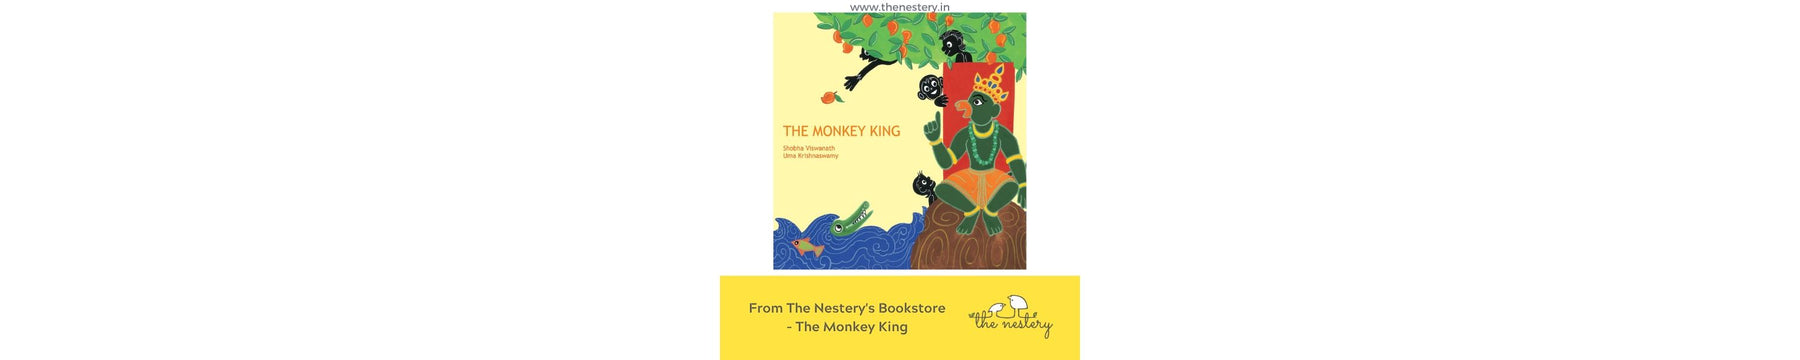 Book Review - The Monkey King